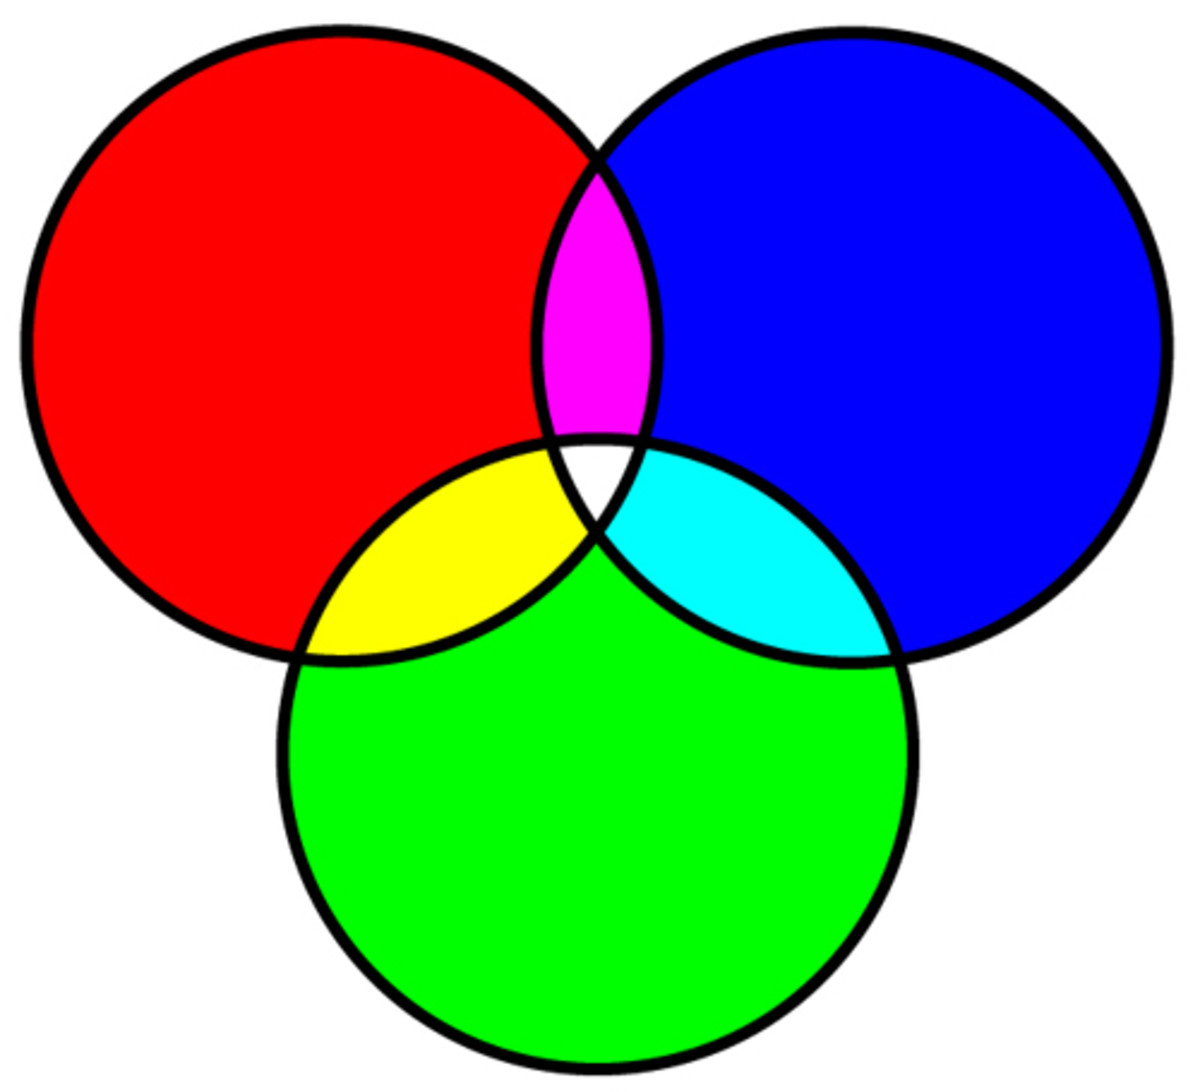 Venn Diagram using more than two circles and colors.